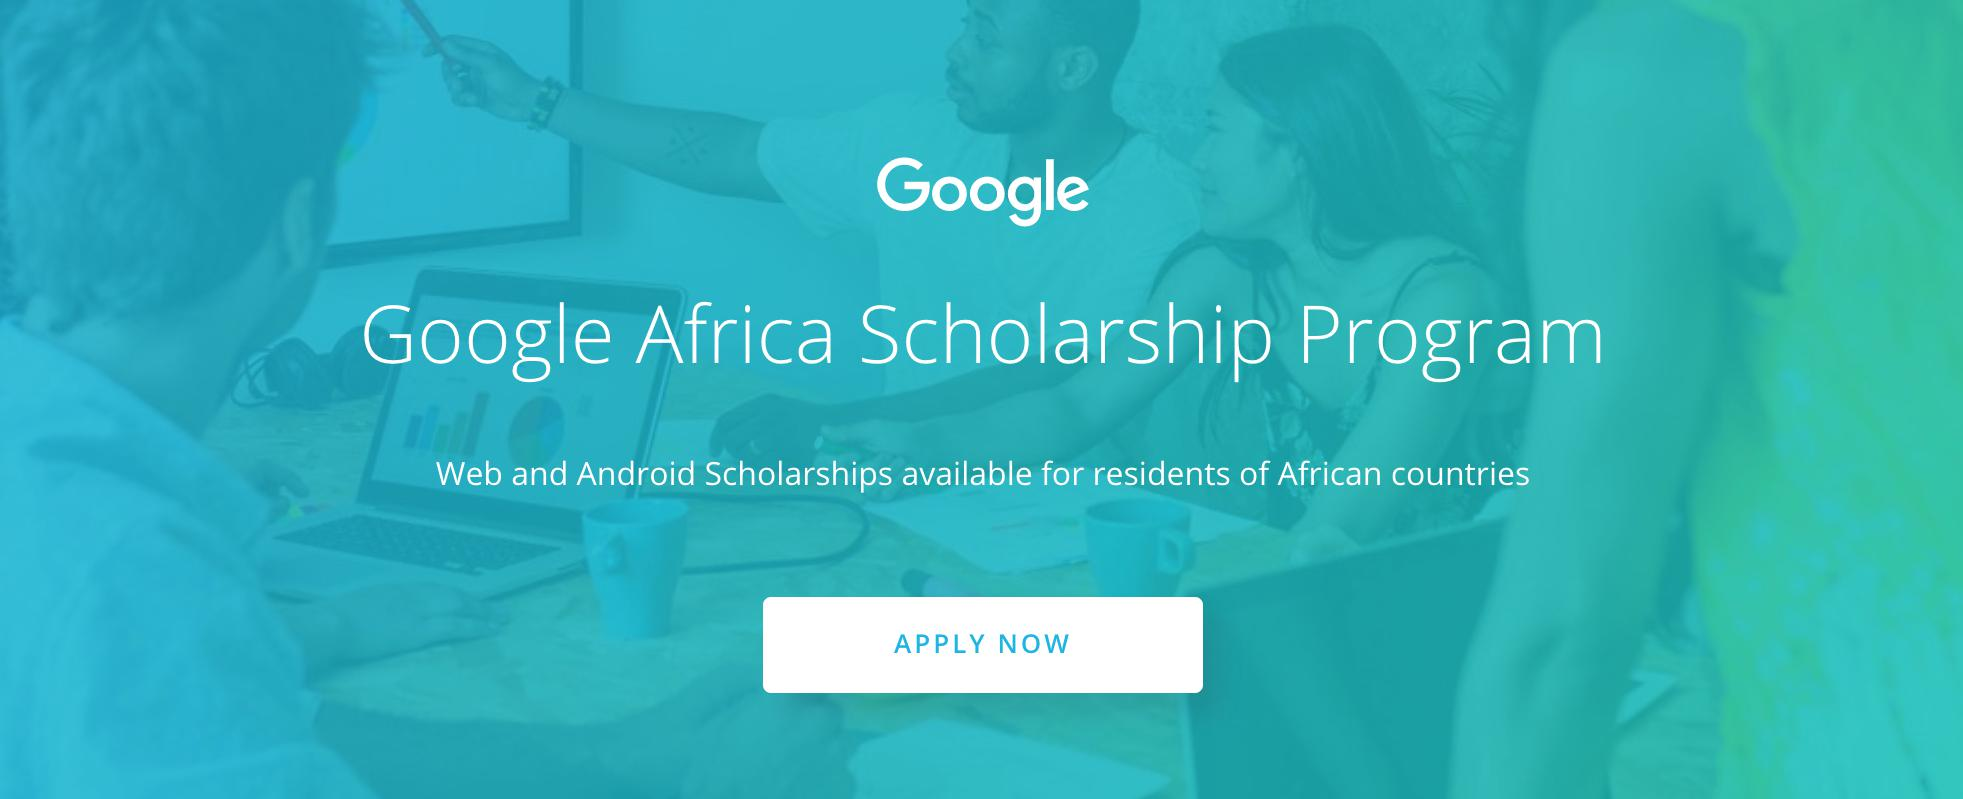 Google Africa Scholarship Program